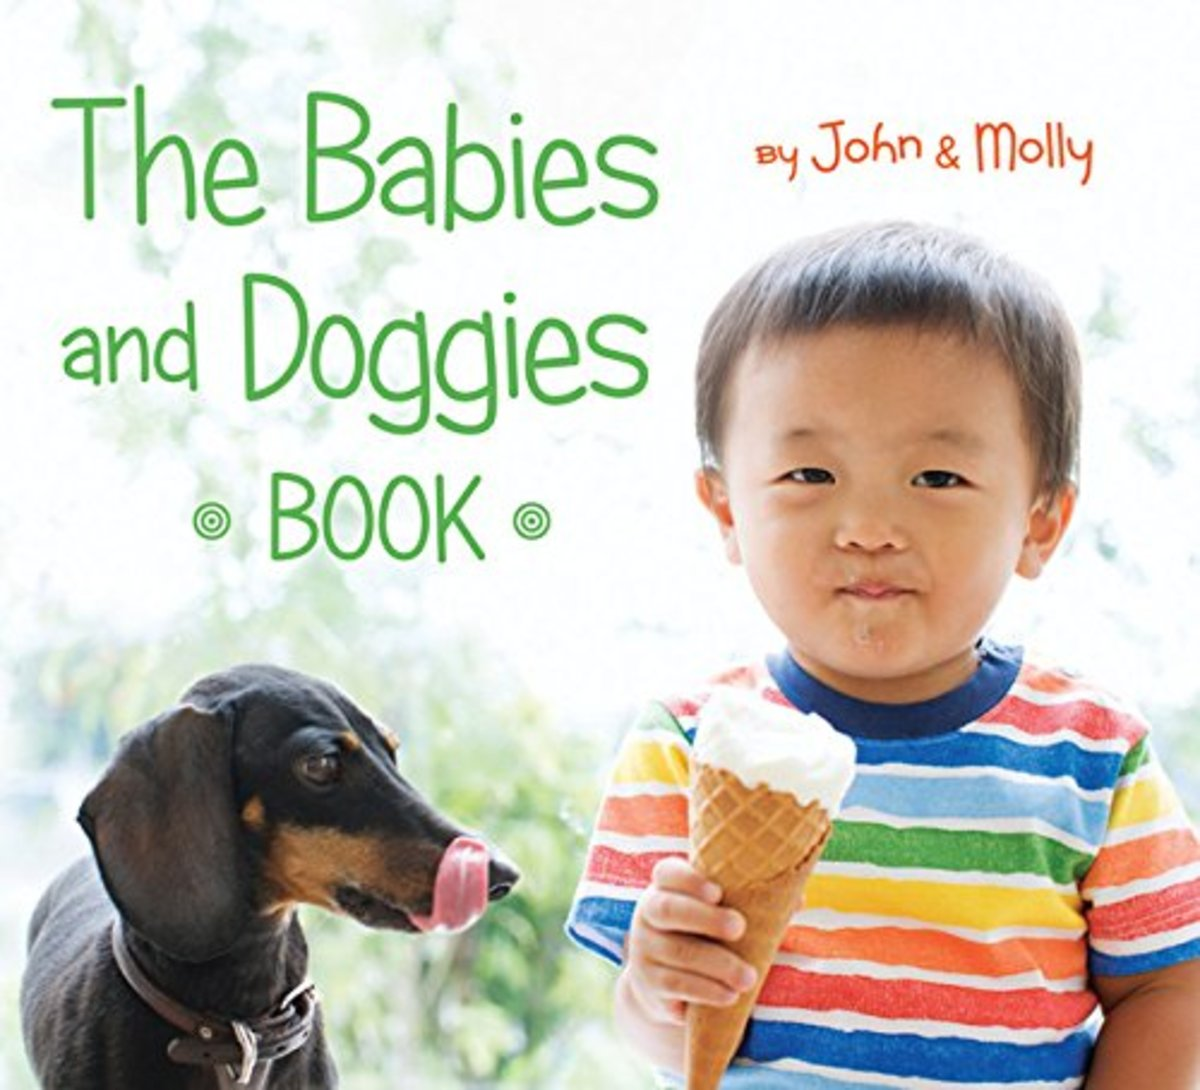 The Babies and Doggies Book by John & Molly